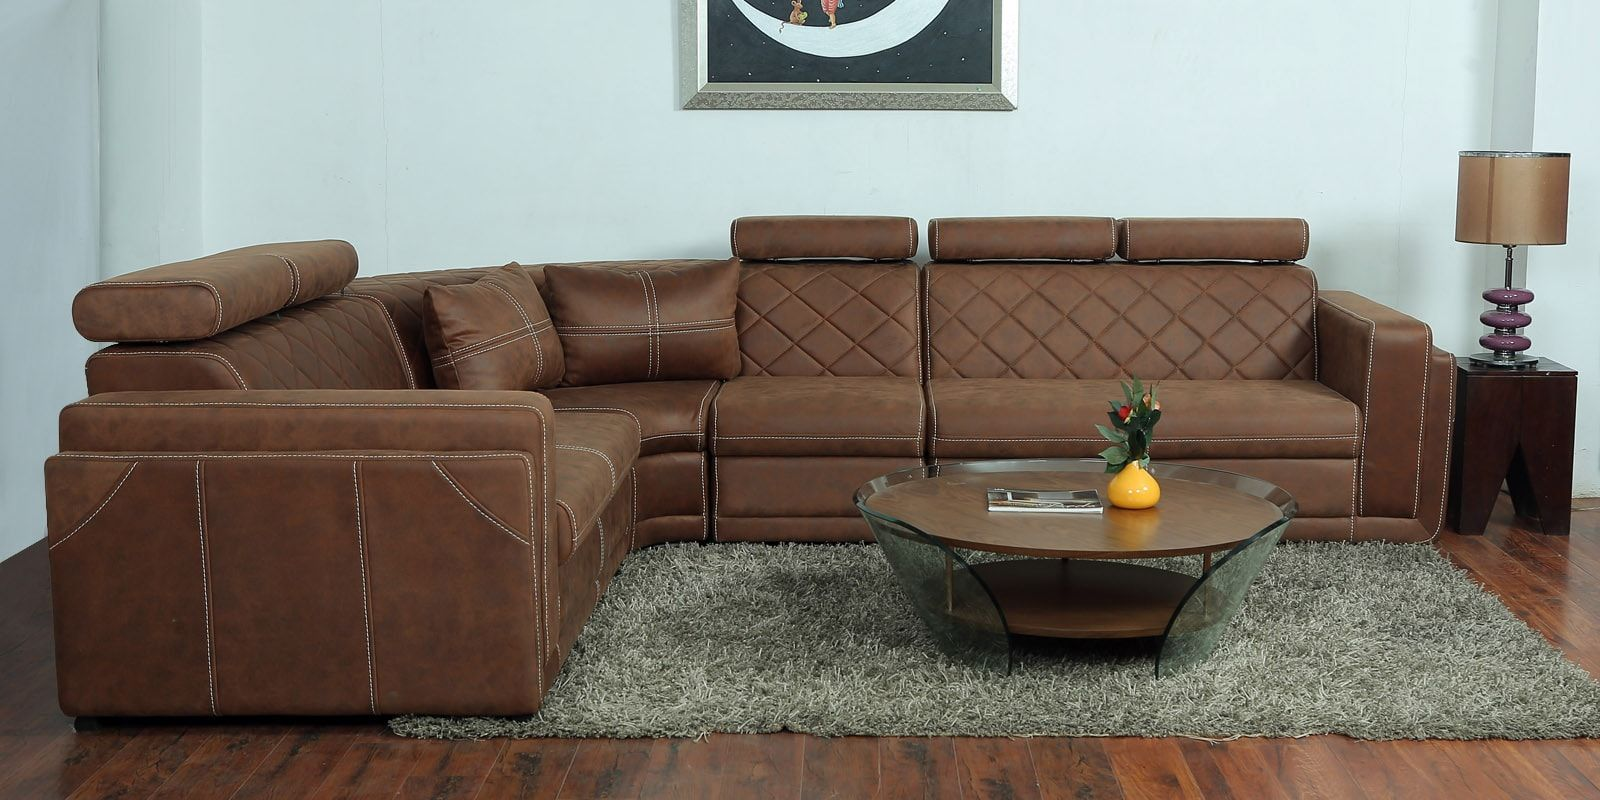 Buy Nova Corner Sofa With Upholstery In Tan Colour By Star India Online Contemporary Corner Sofas Sectional Sofas Furniture Pepperfry Product Corner Sofa Design Corner Sectional Sofa Sectional Sofa